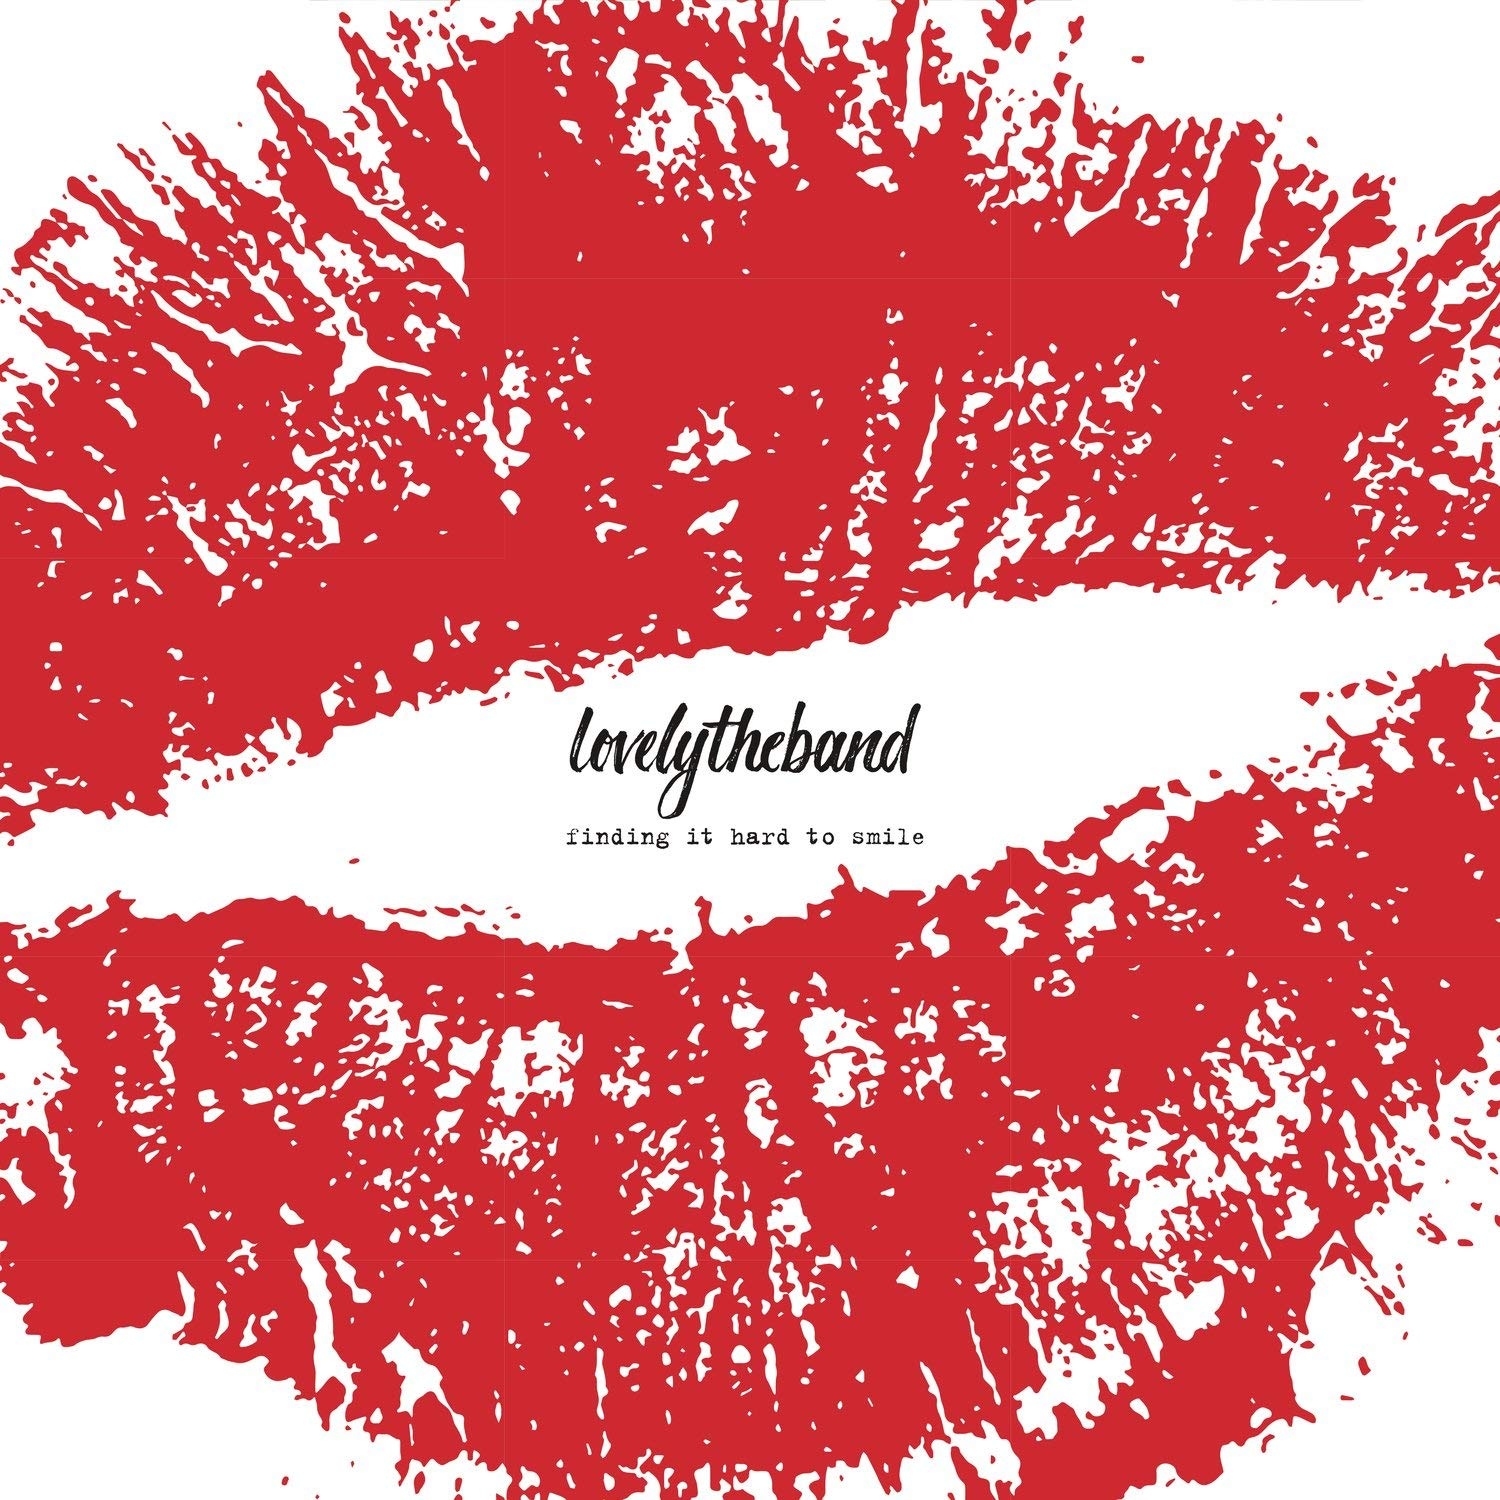 lovelytheband - Finding It Hard To Smile [Autographed Insert LP]